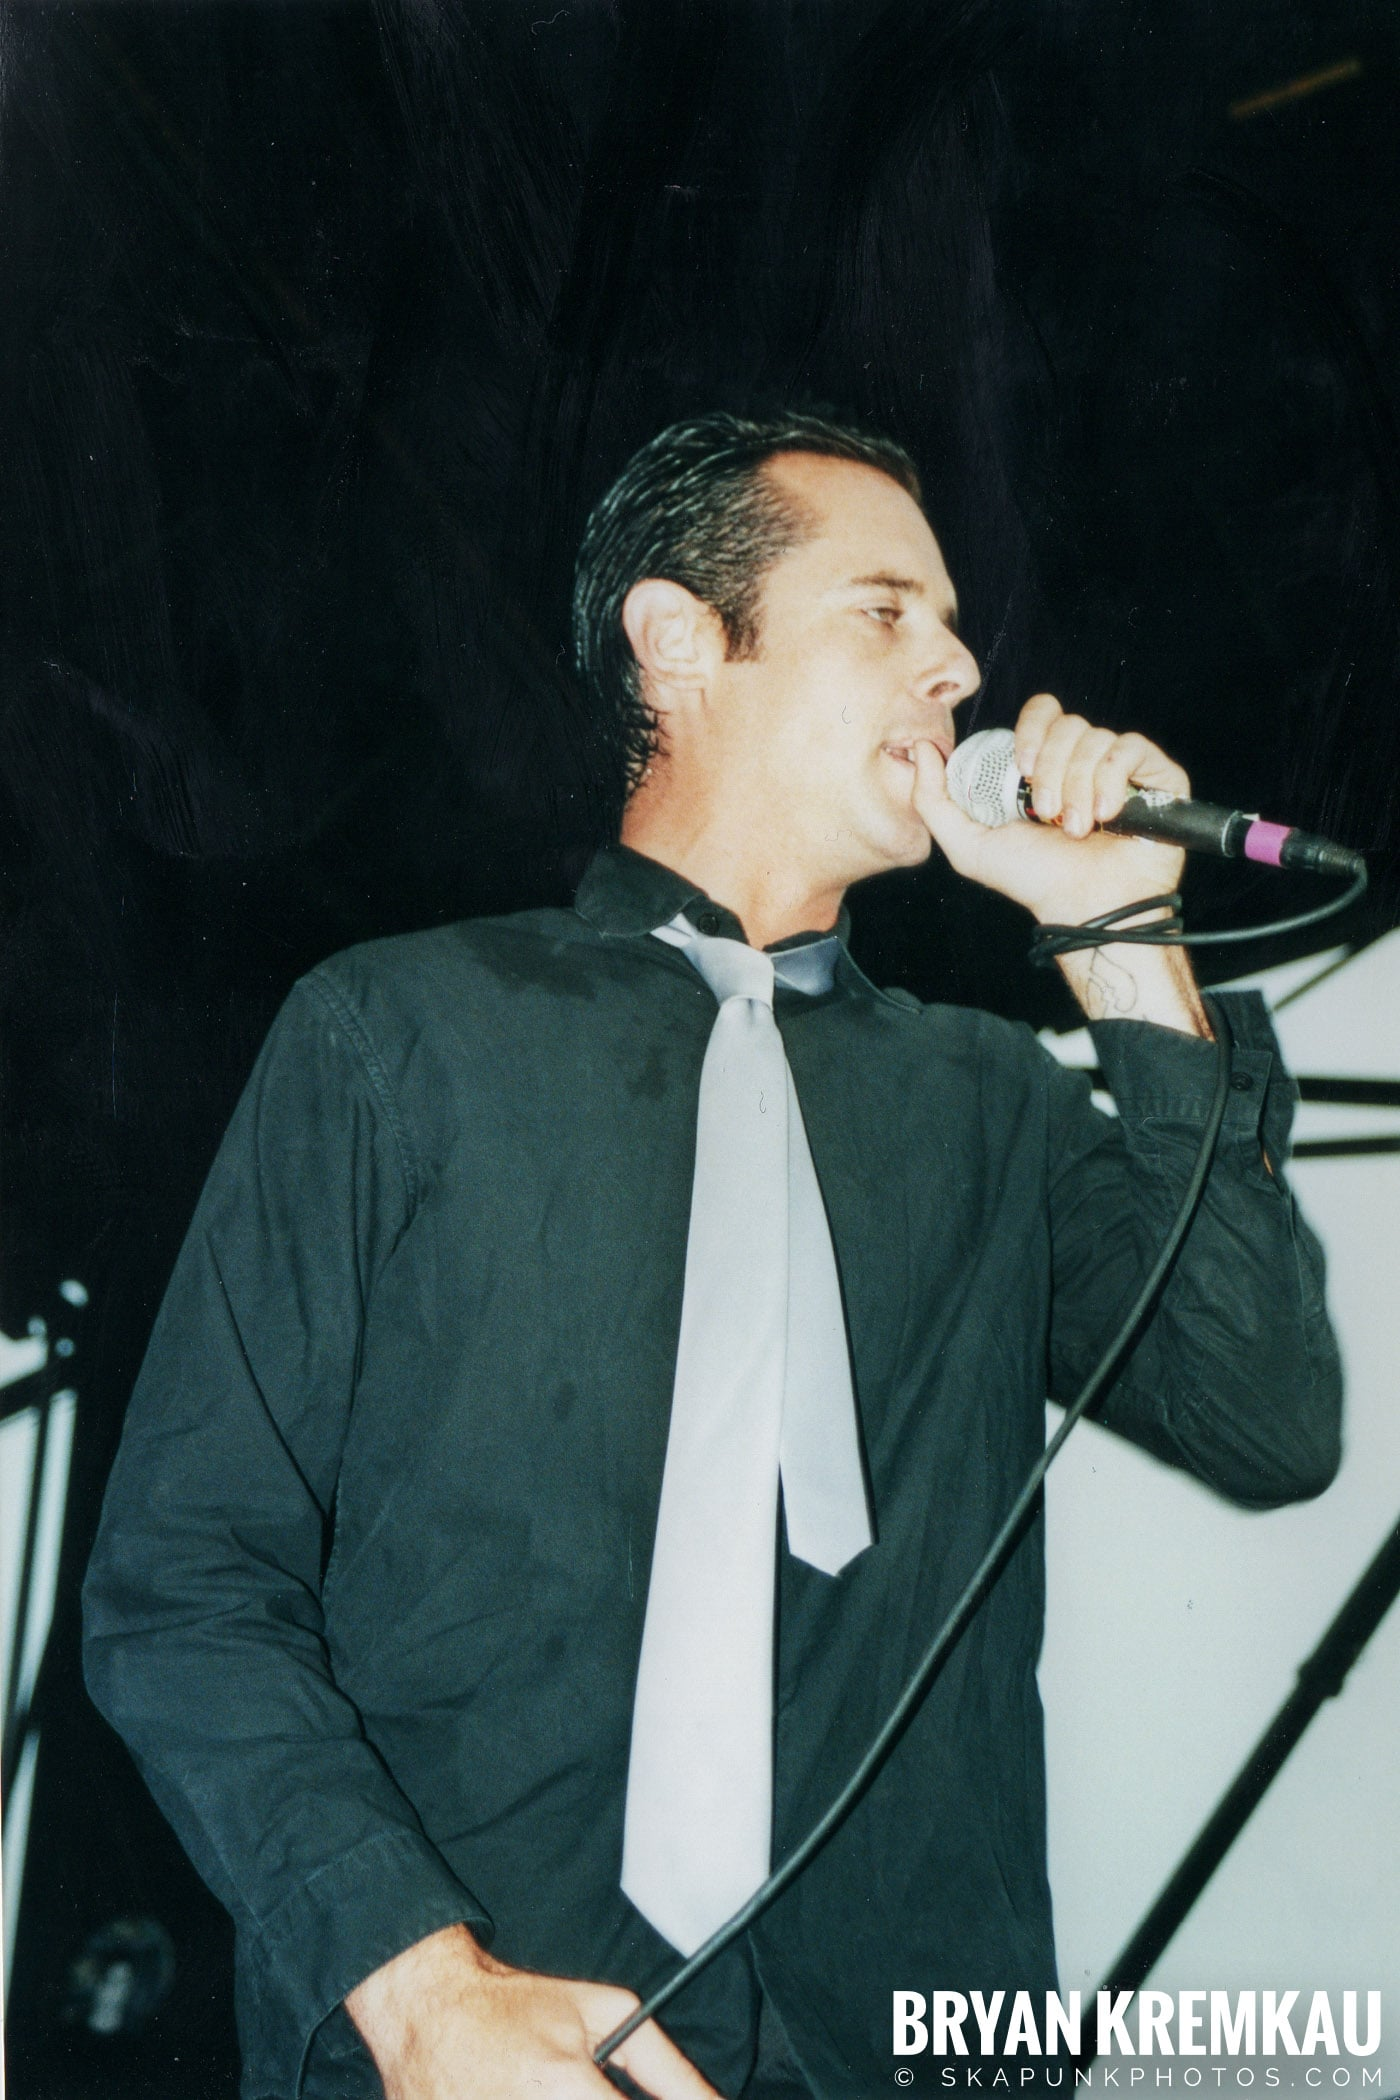 The Bouncing Souls @ Vans Warped Tour, Randall's Island, NYC - 8.4.01 (9)